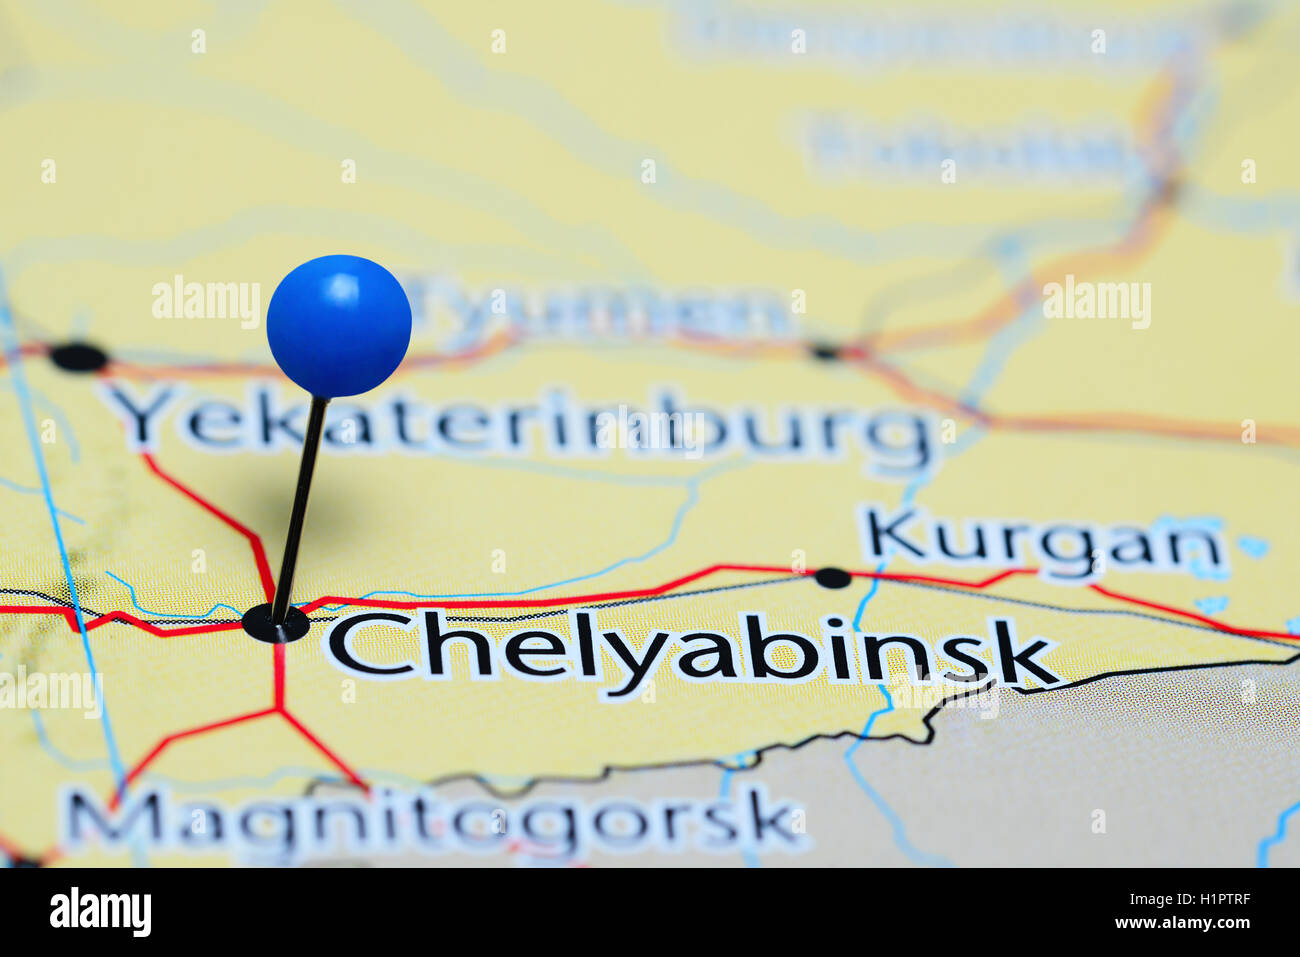 Chelyabinsk pinned on a map of Russia Stock Photo Royalty Free